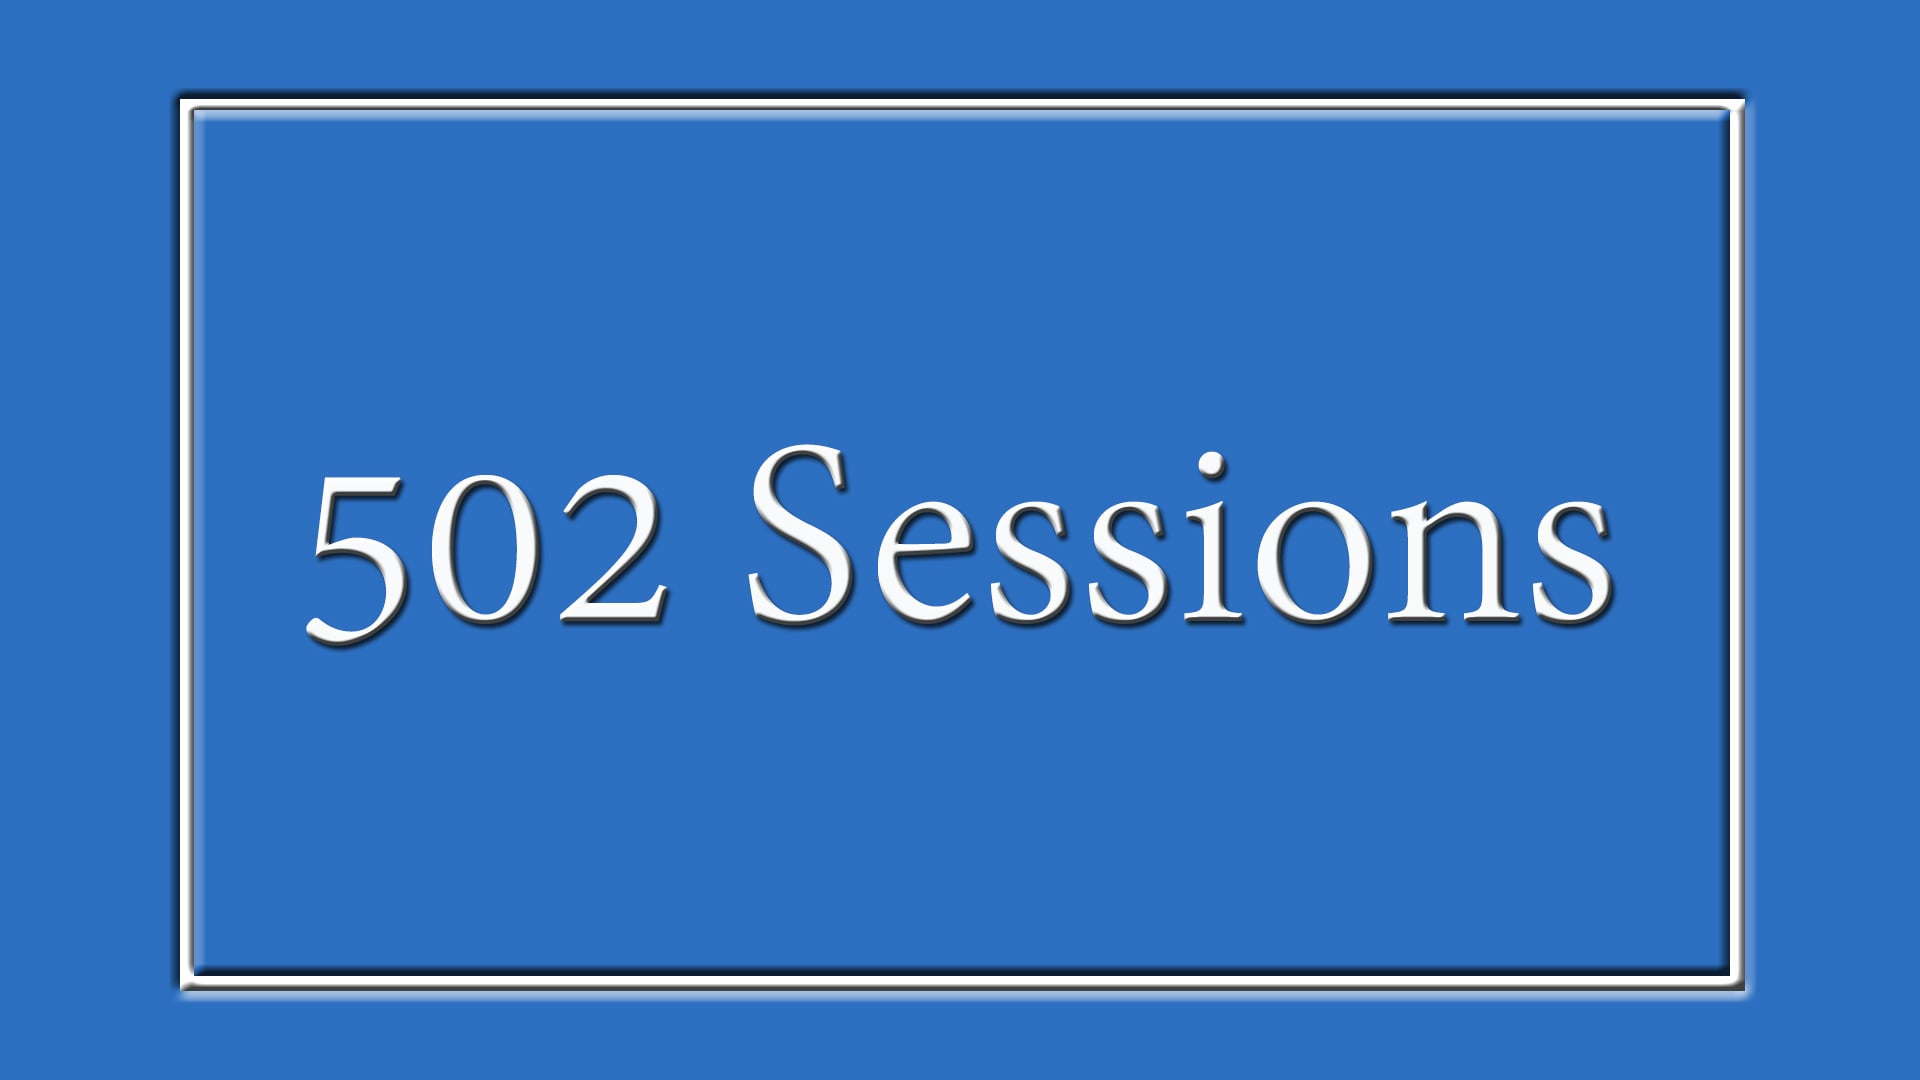 502 Sessions